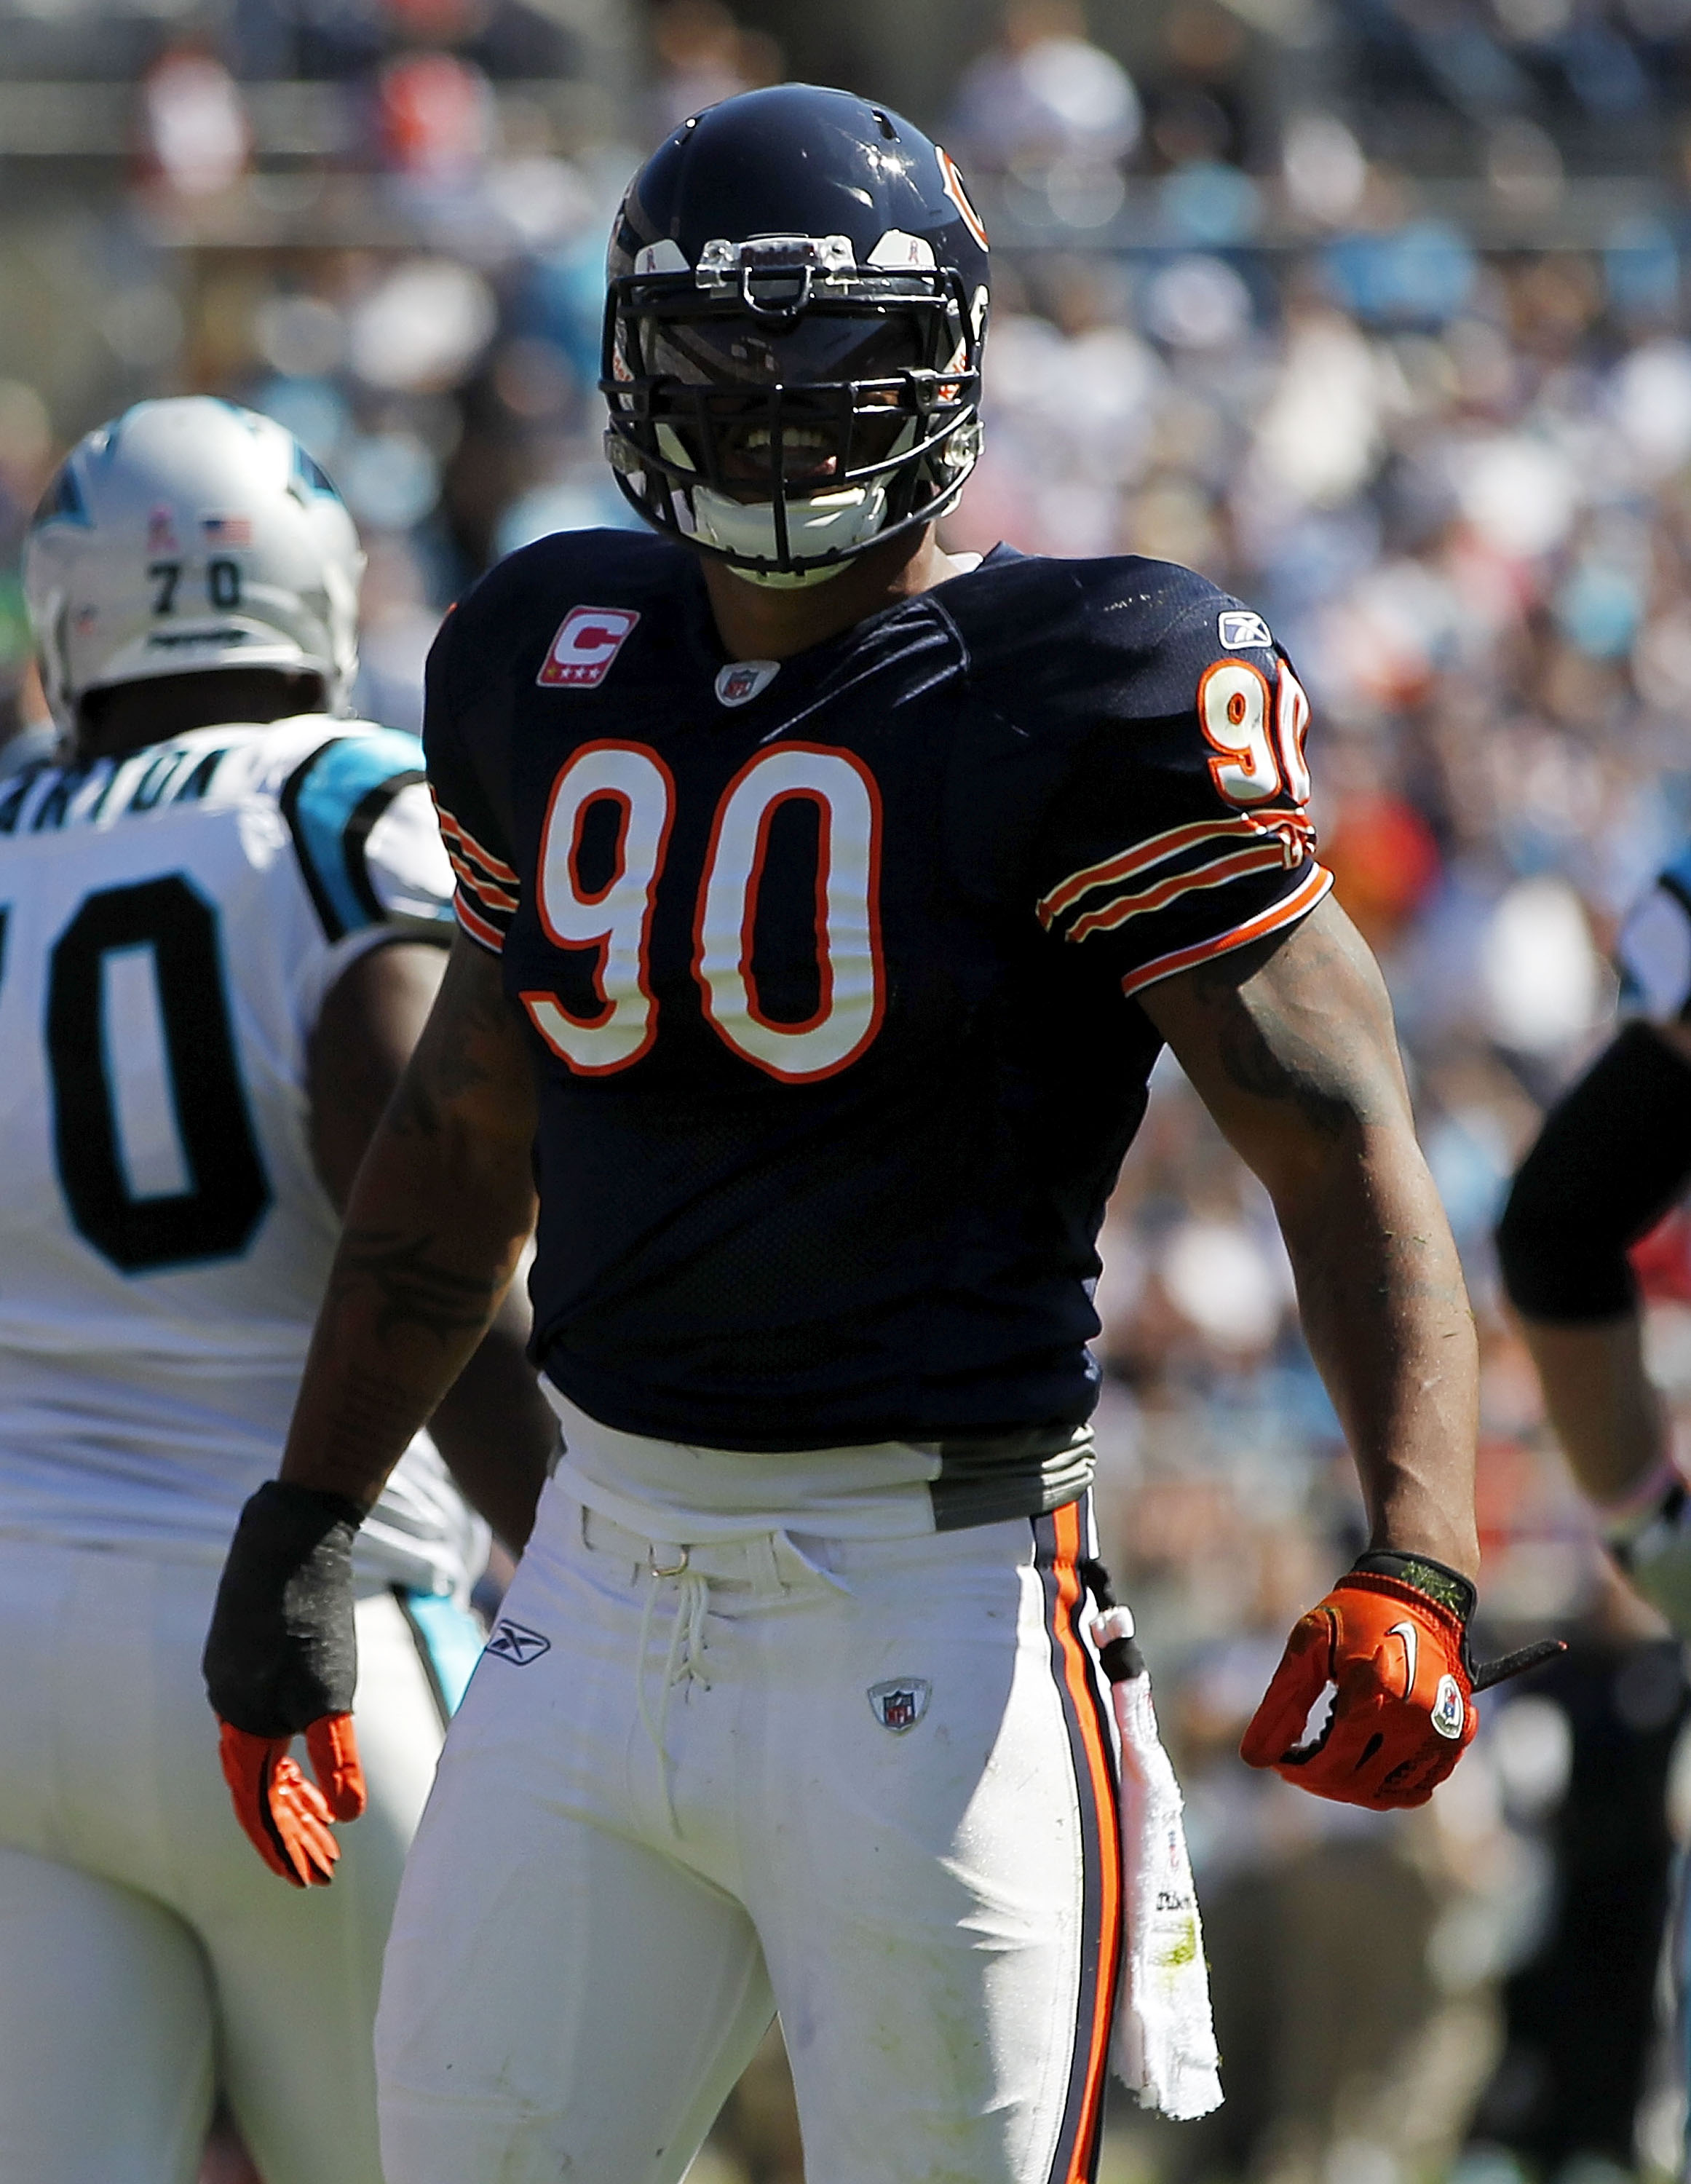 CHARLOTTE, NC - OCTOBER 10: Defensive end Julius Peppers #90 of the Chicago Bears stands on the field against the Carolina Panthers at Bank of America Stadium on October 10, 2010 in Charlotte, North Carolina. (Photo by Geoff Burke/Getty Images)